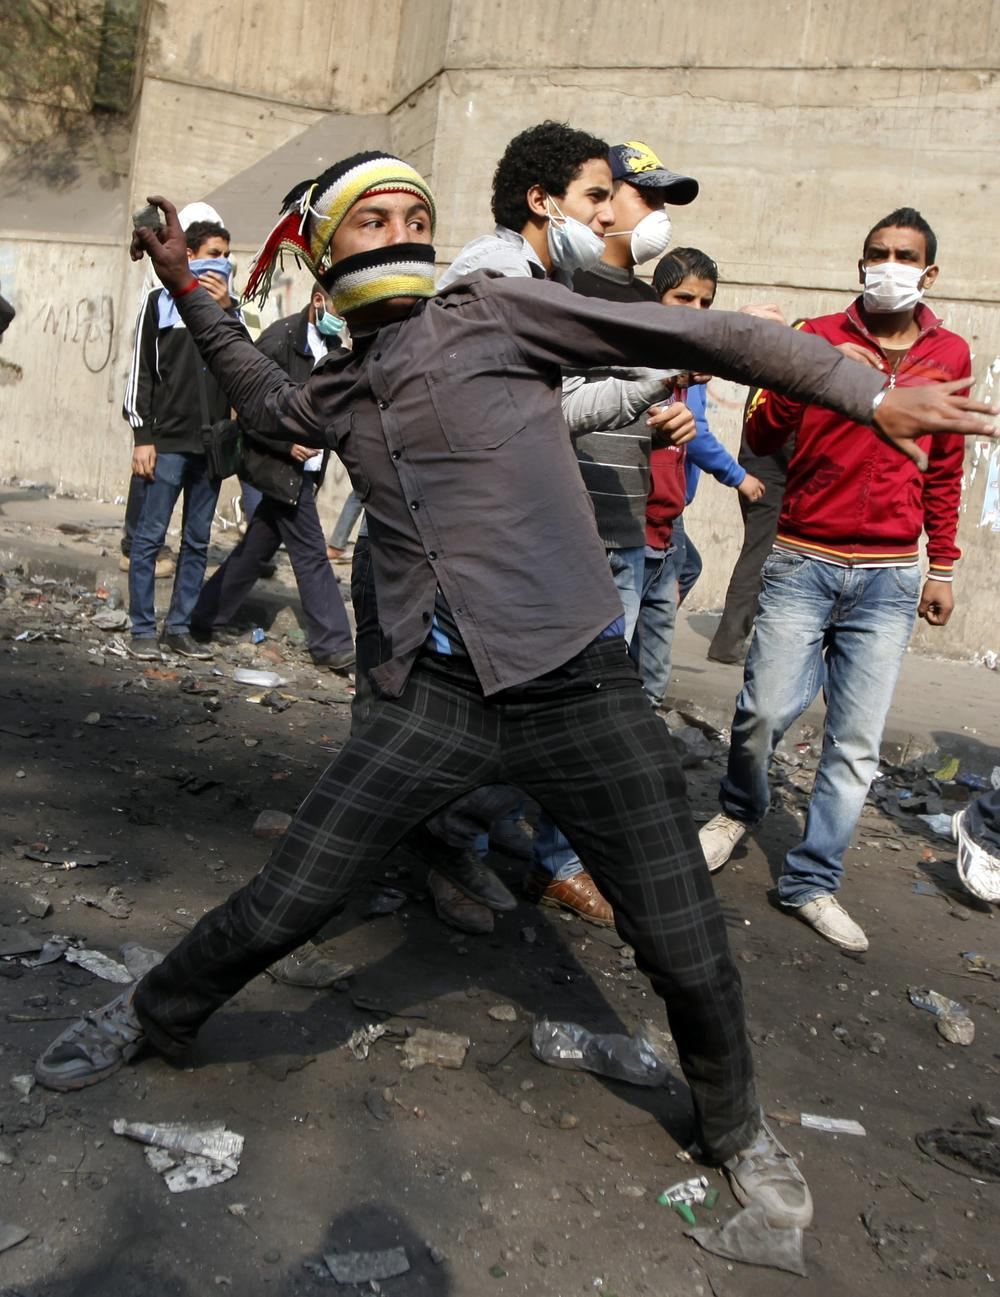 A protester throws stones during clashes with the Egyptian riot police near Tahrir square in Cairo, Egypt on Tuesday. (AP)